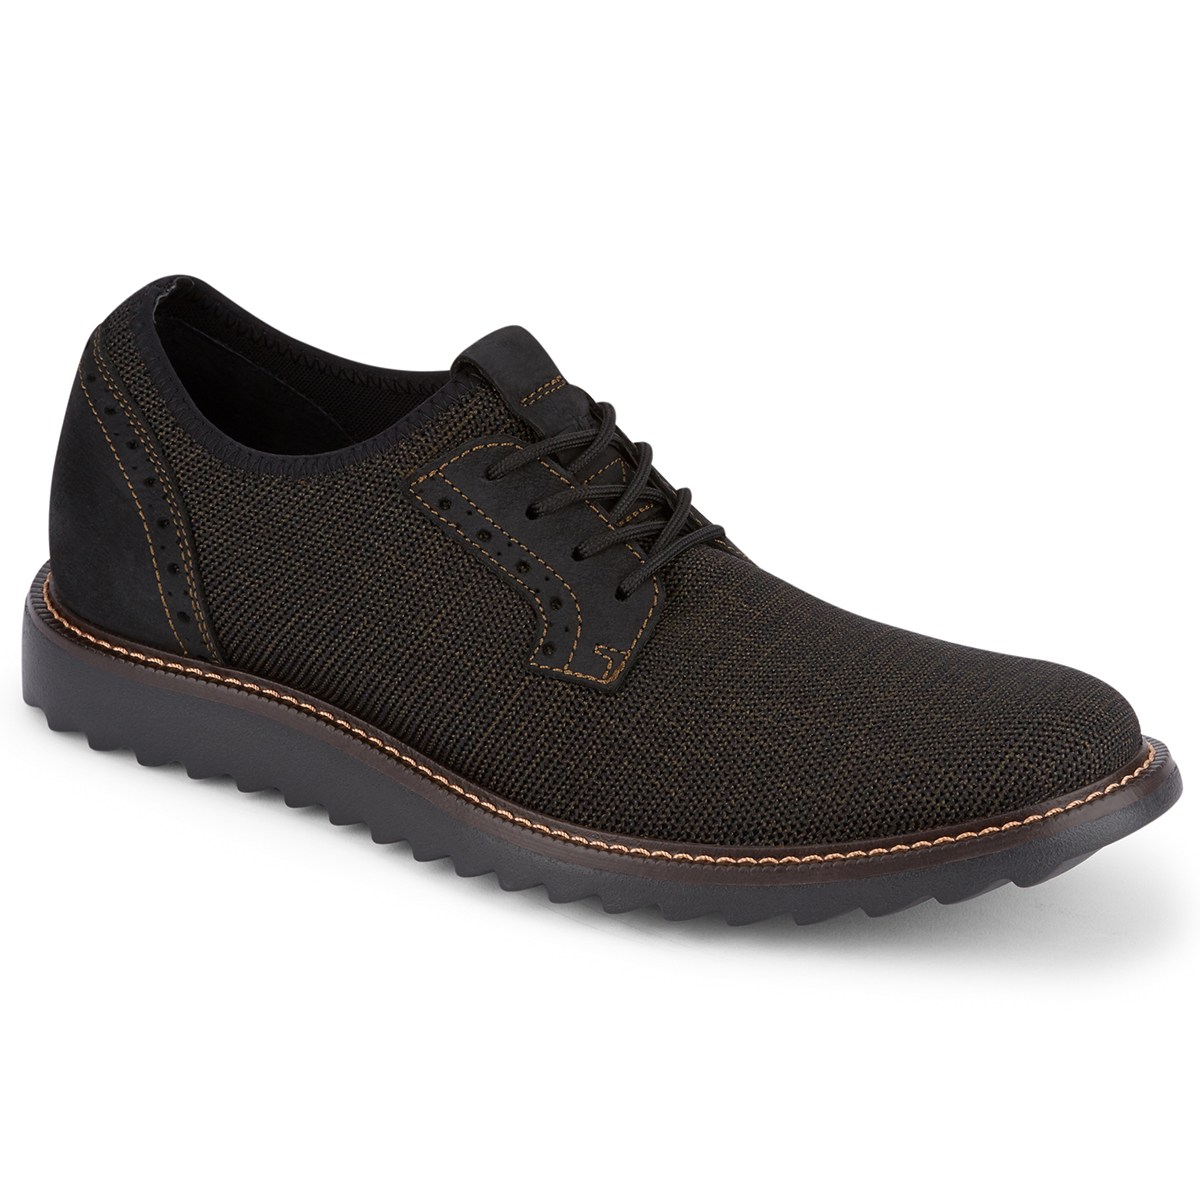 Dockers Men's Einstein Oxford Shoes - Black, 9